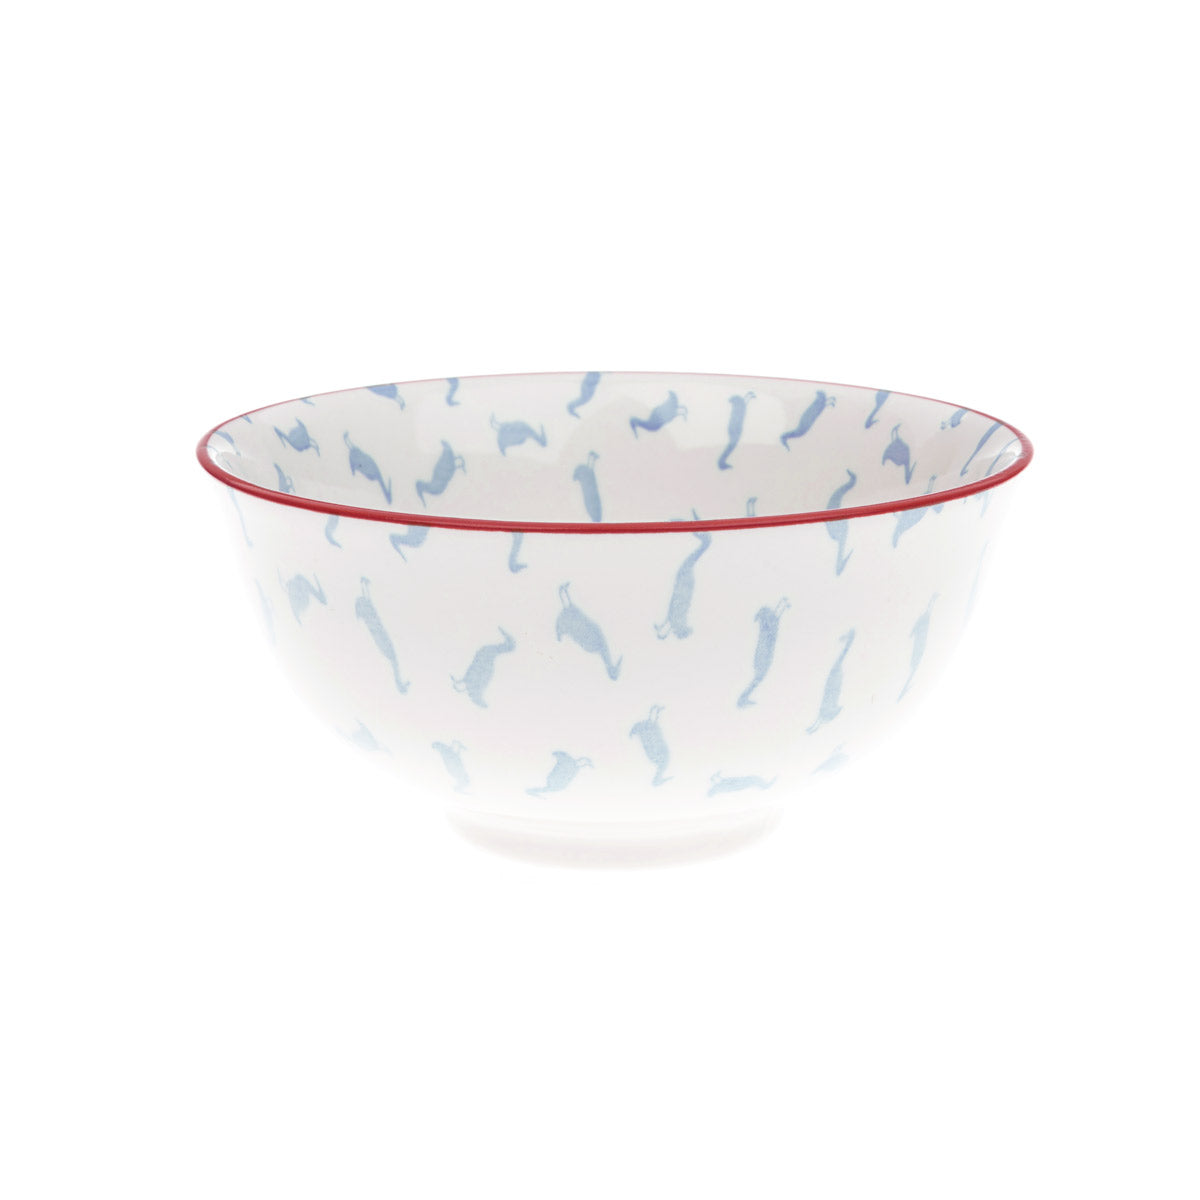 Runner Duck Nibbles Bowl